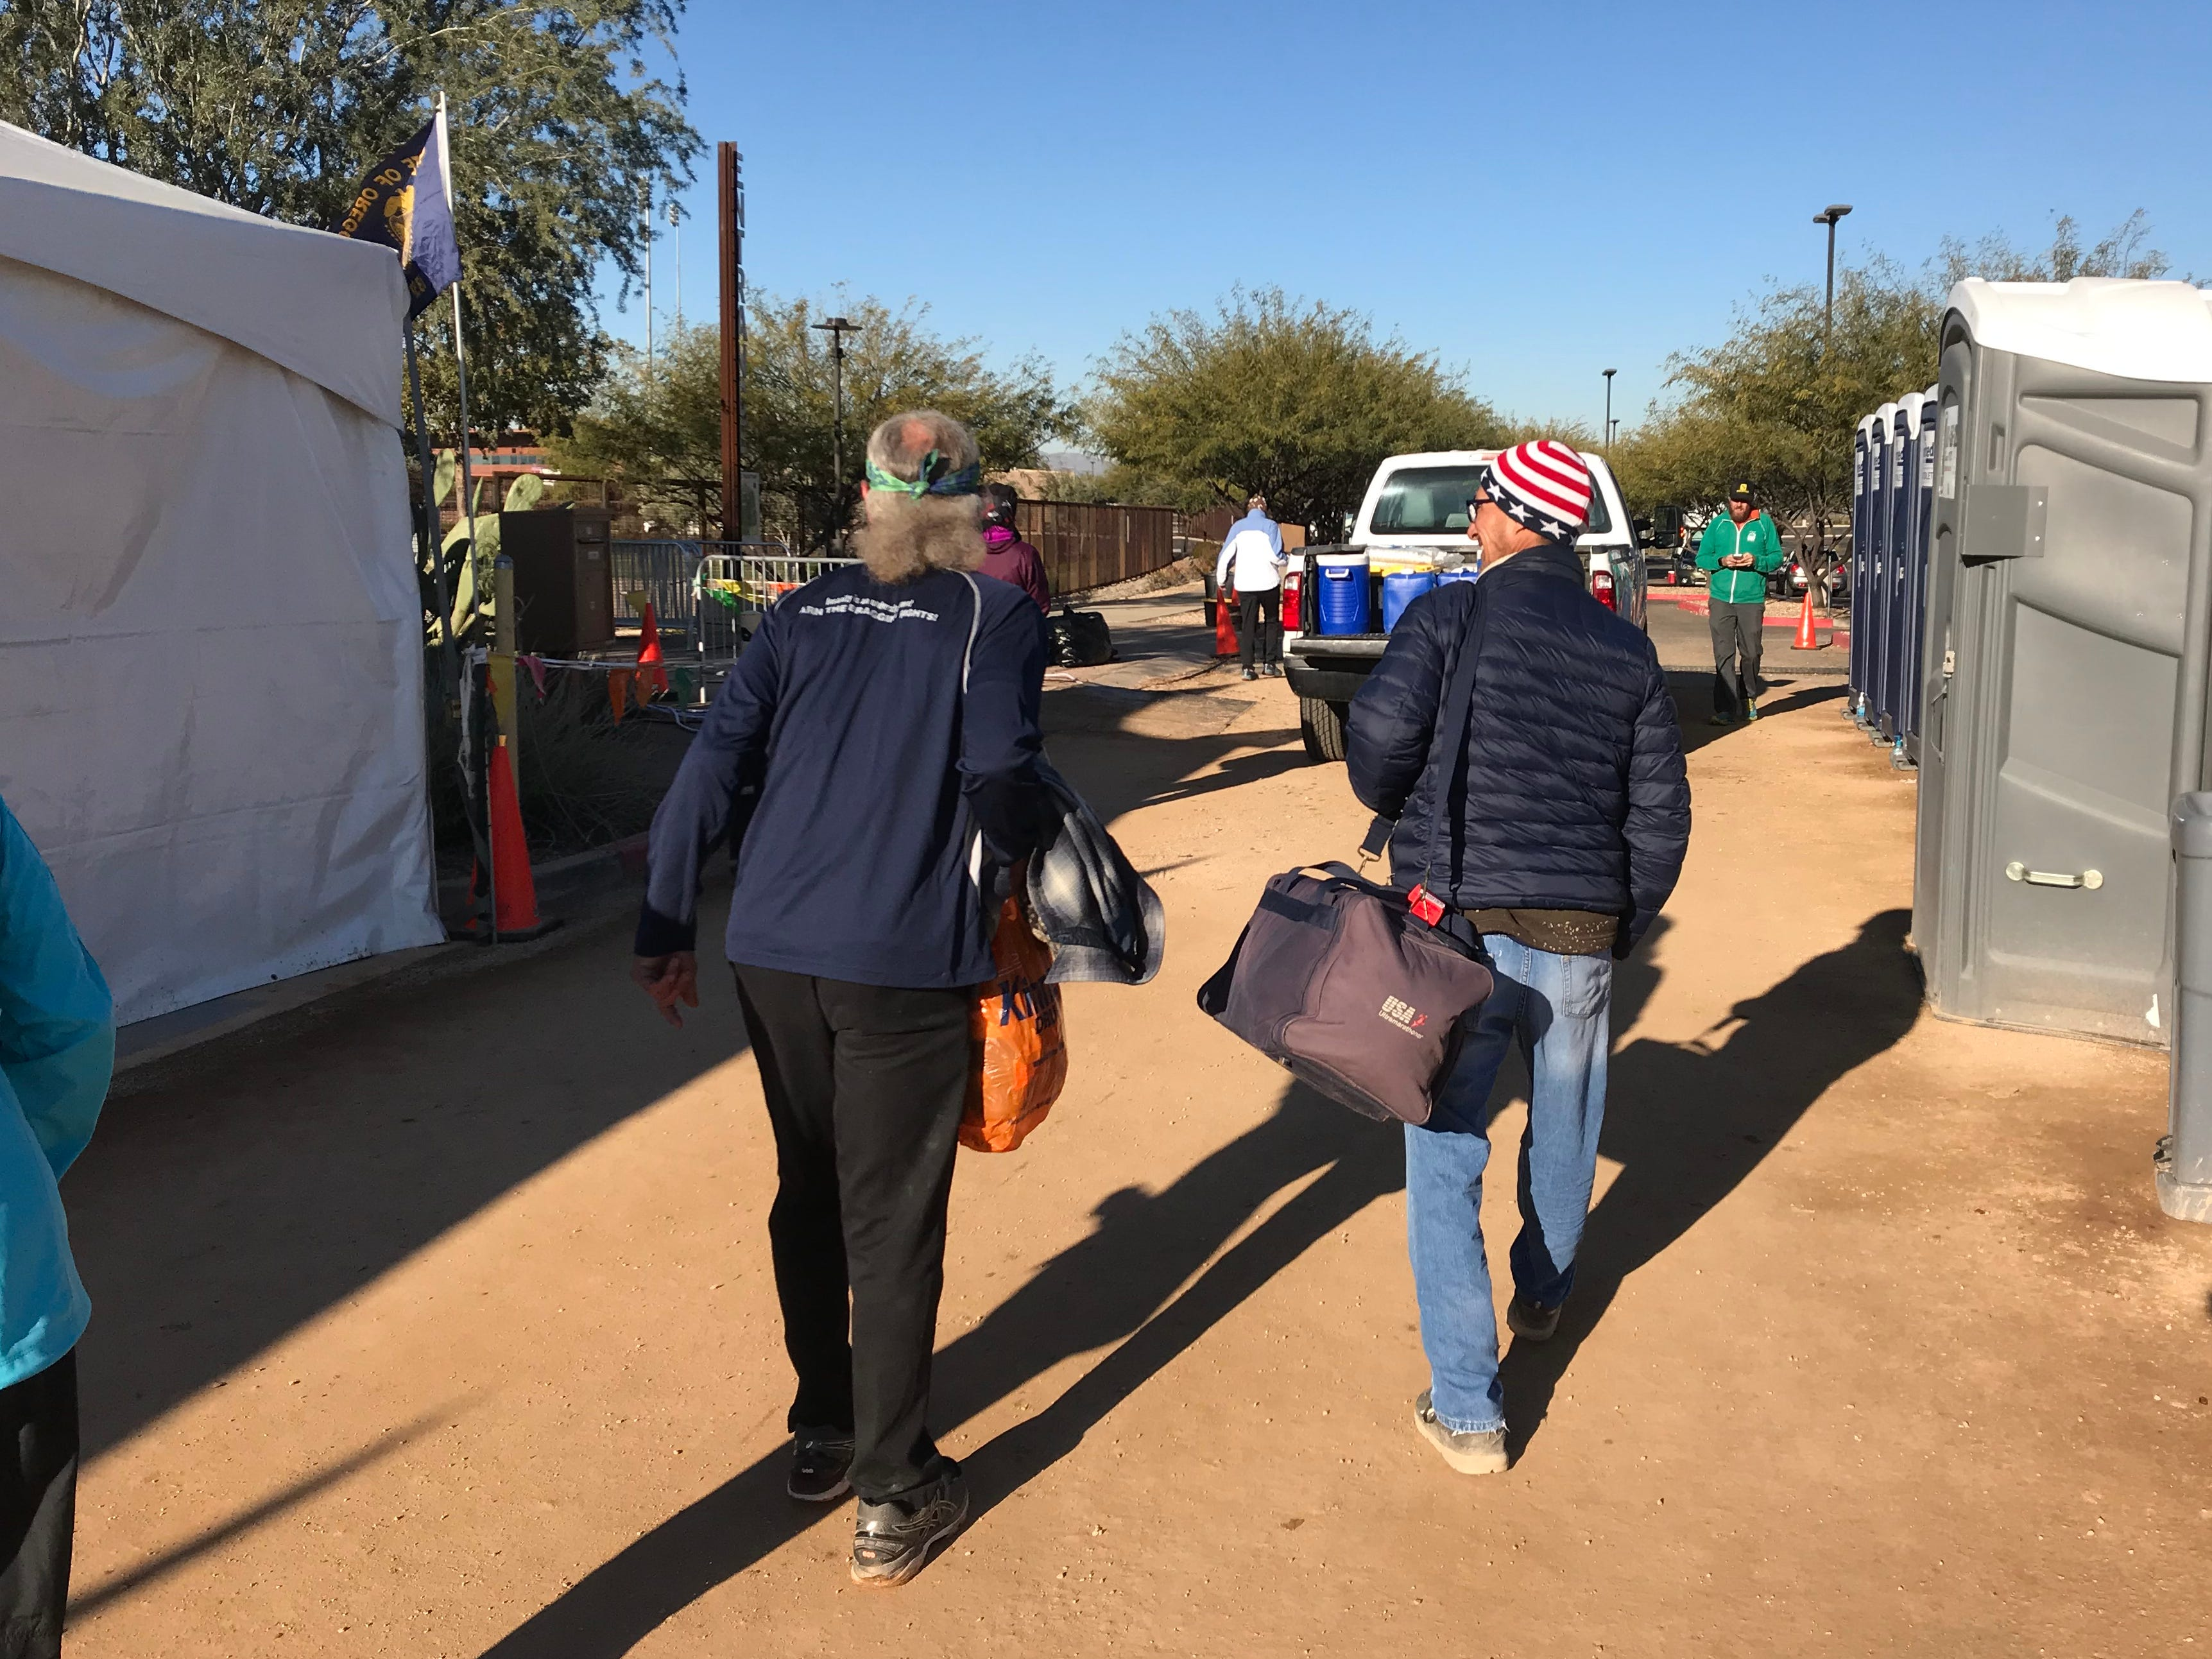 After running for six days on less than two hours of sleep during the Across the Years Race at Camelback Ranch in Glendale, John Geesler (left) leaves to catch an early flight.